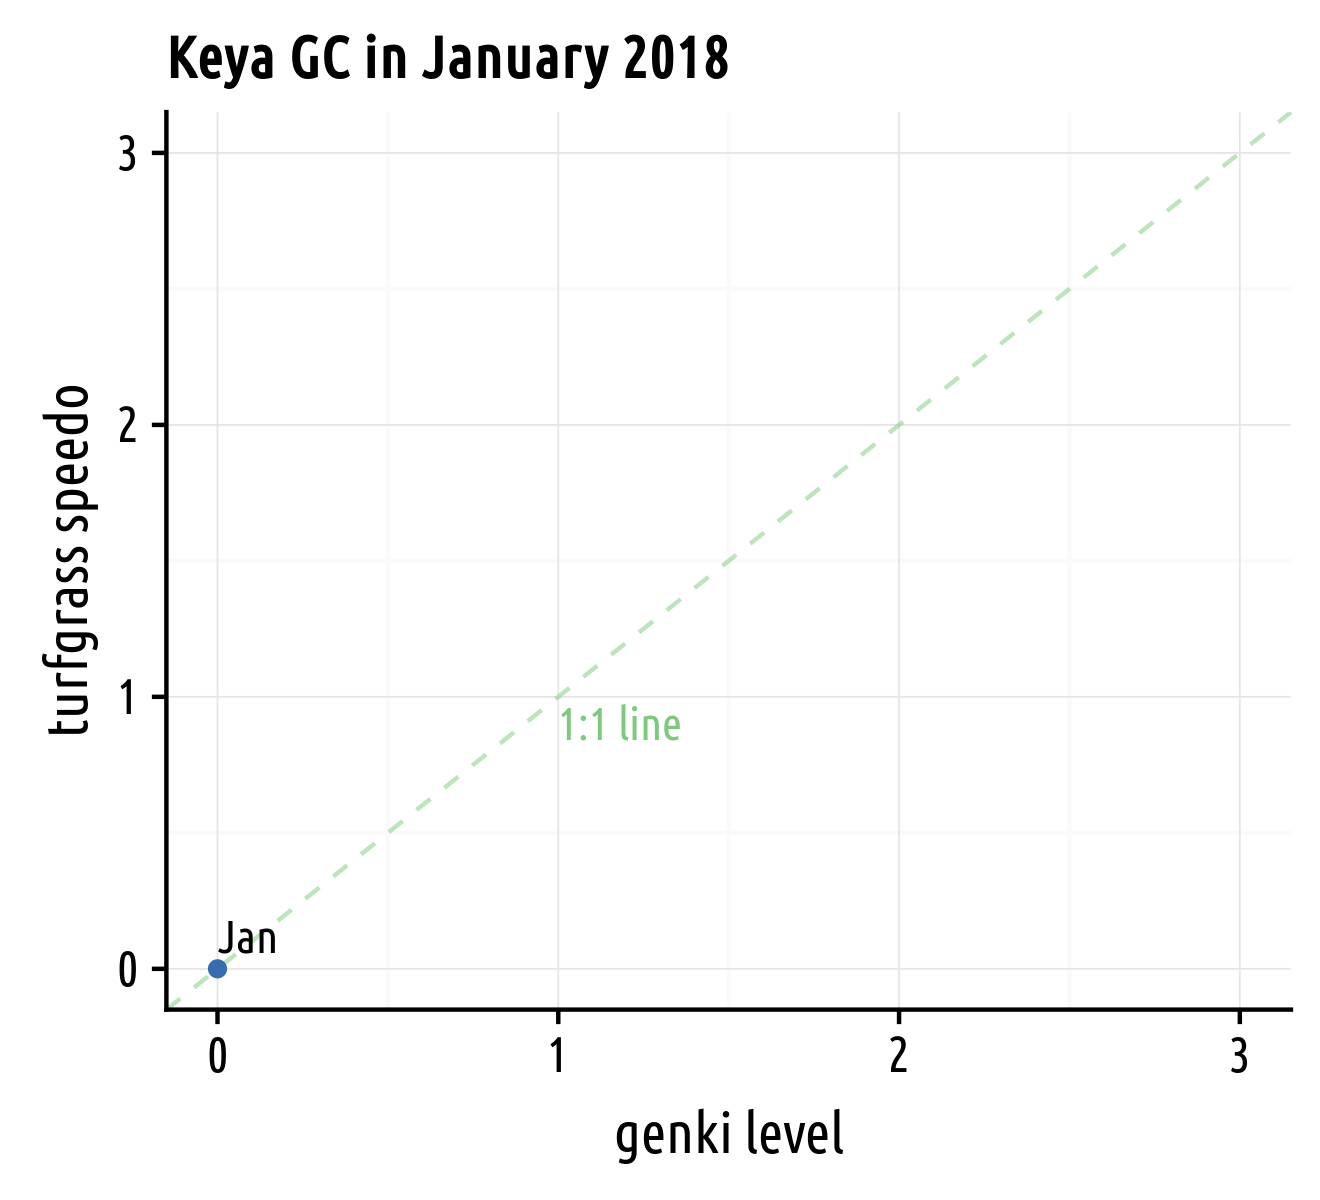 genki level plotted against speedo